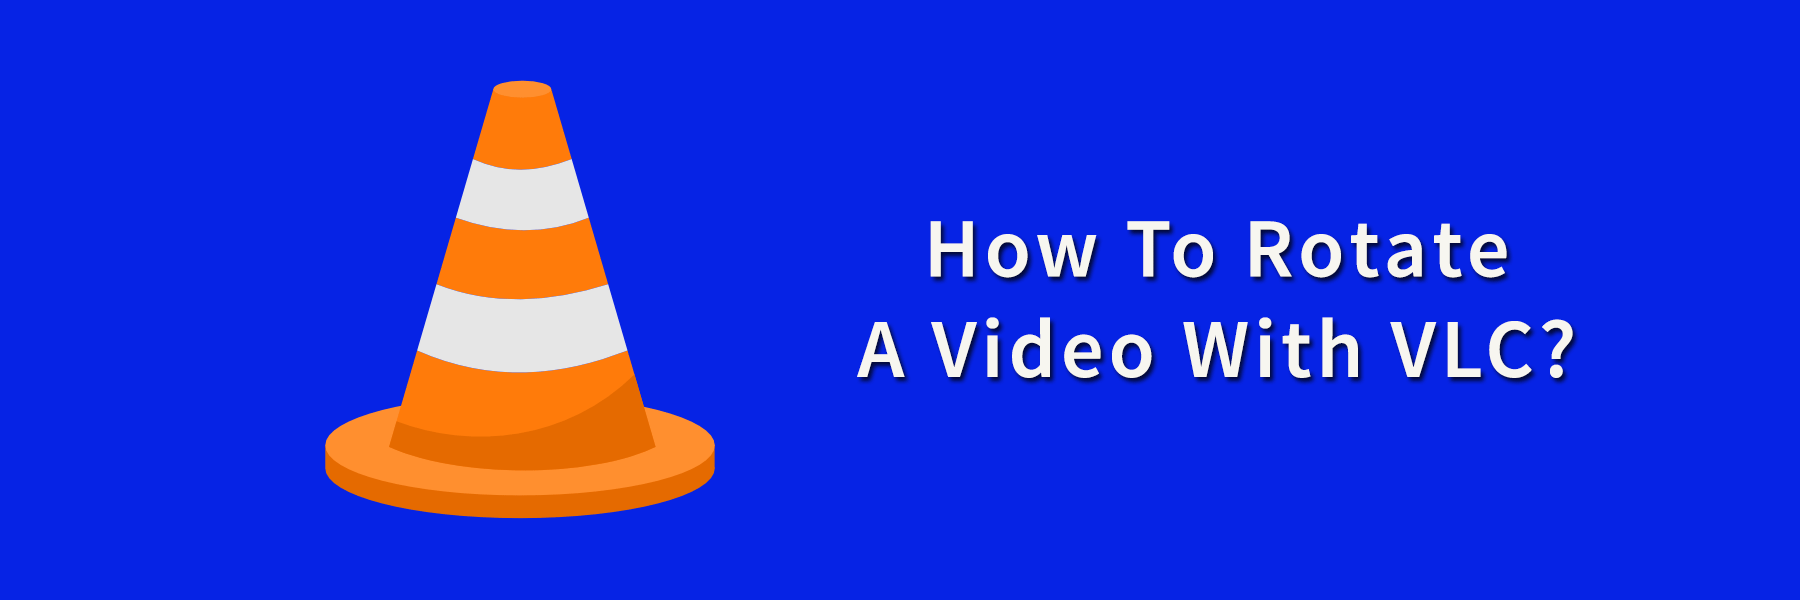 How To Rotate A Video With Windows Media Player and VLC Player